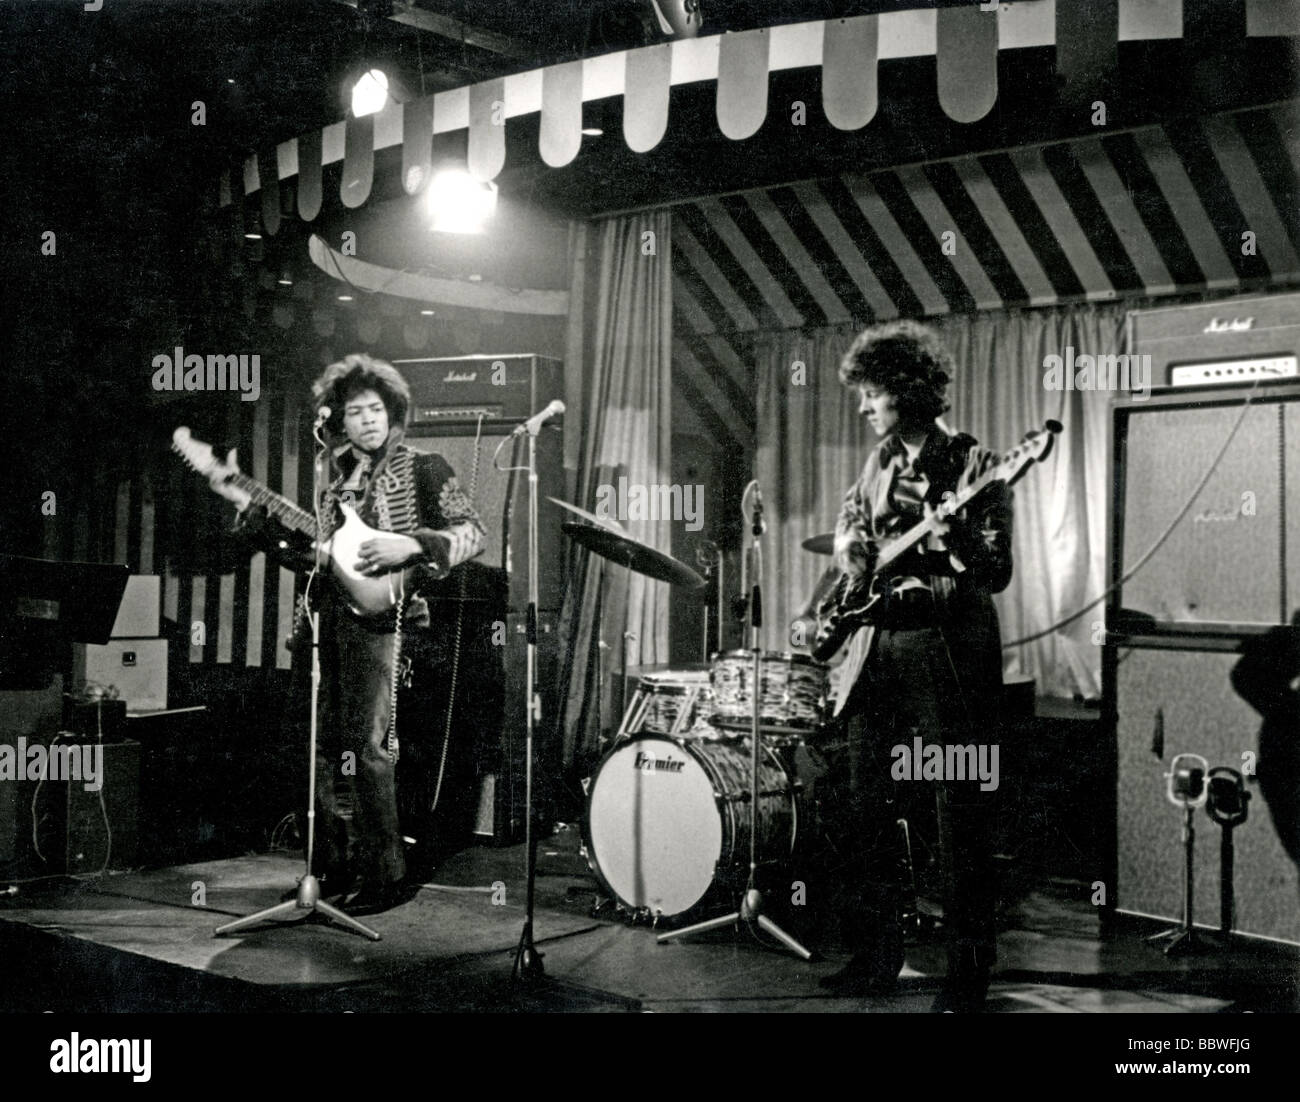 JIMI HENDRIX EXPERIENCE  at the London Marquee Club in Wardour Street on 2 March 1967 while making a programme for - Stock Image